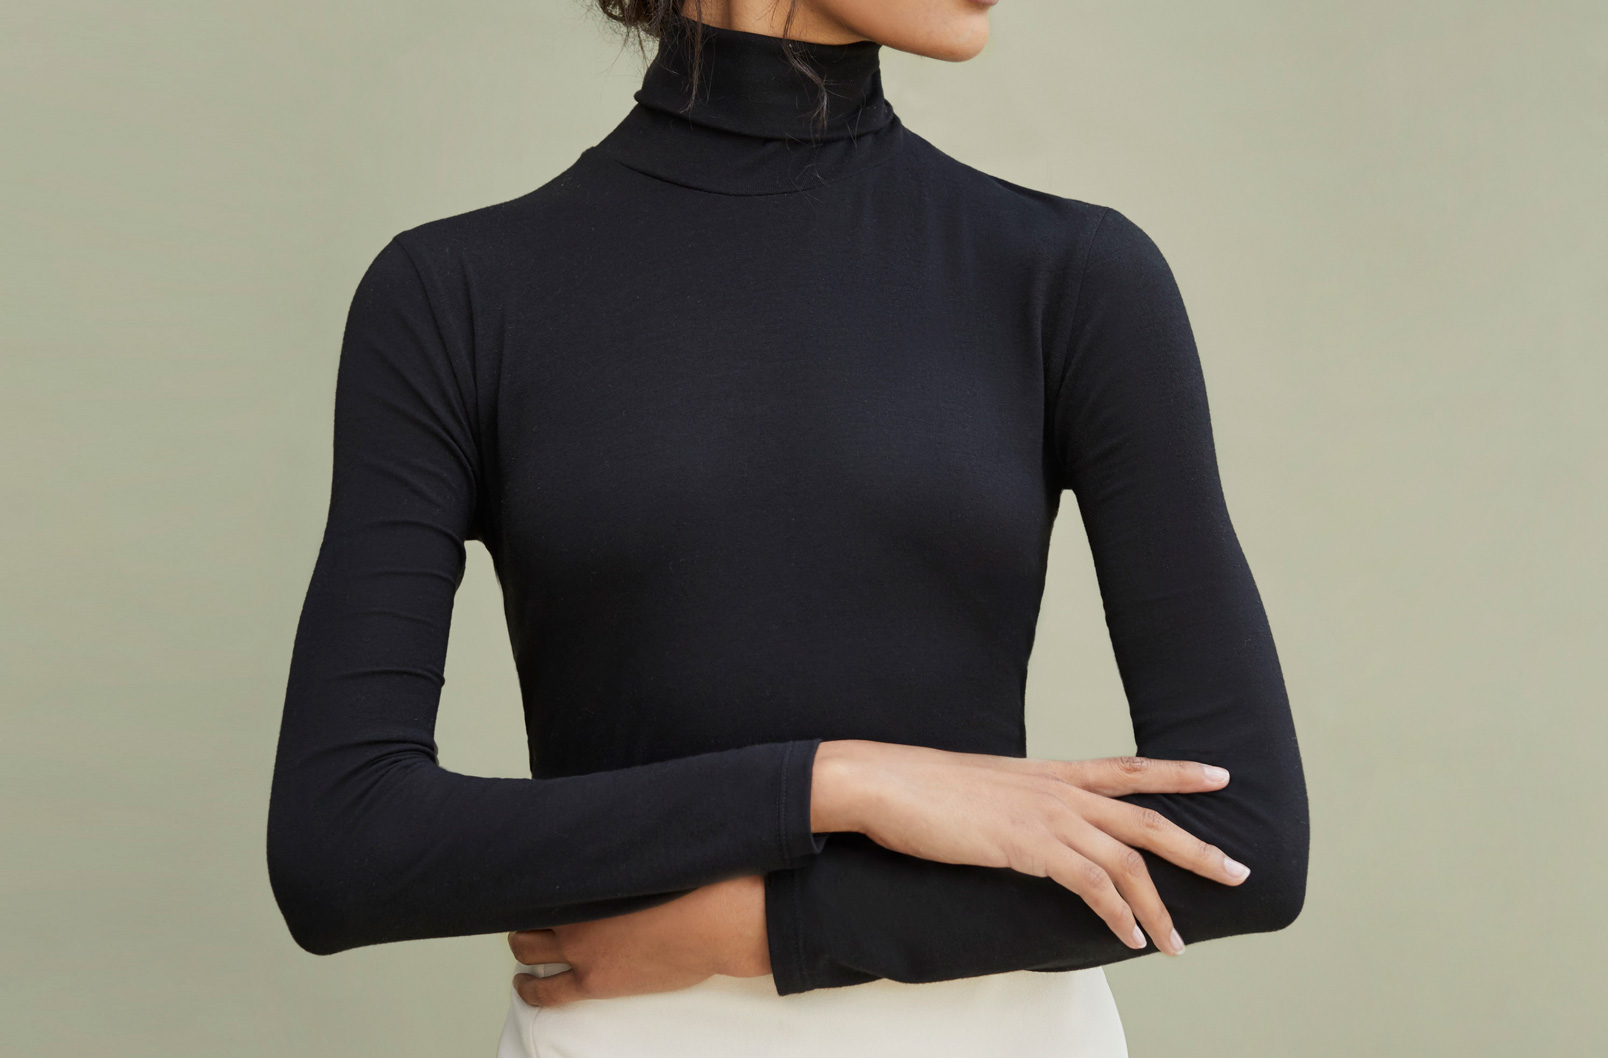 Model wearing Cuyana Slim Turtleneck Long Sleeve Tee